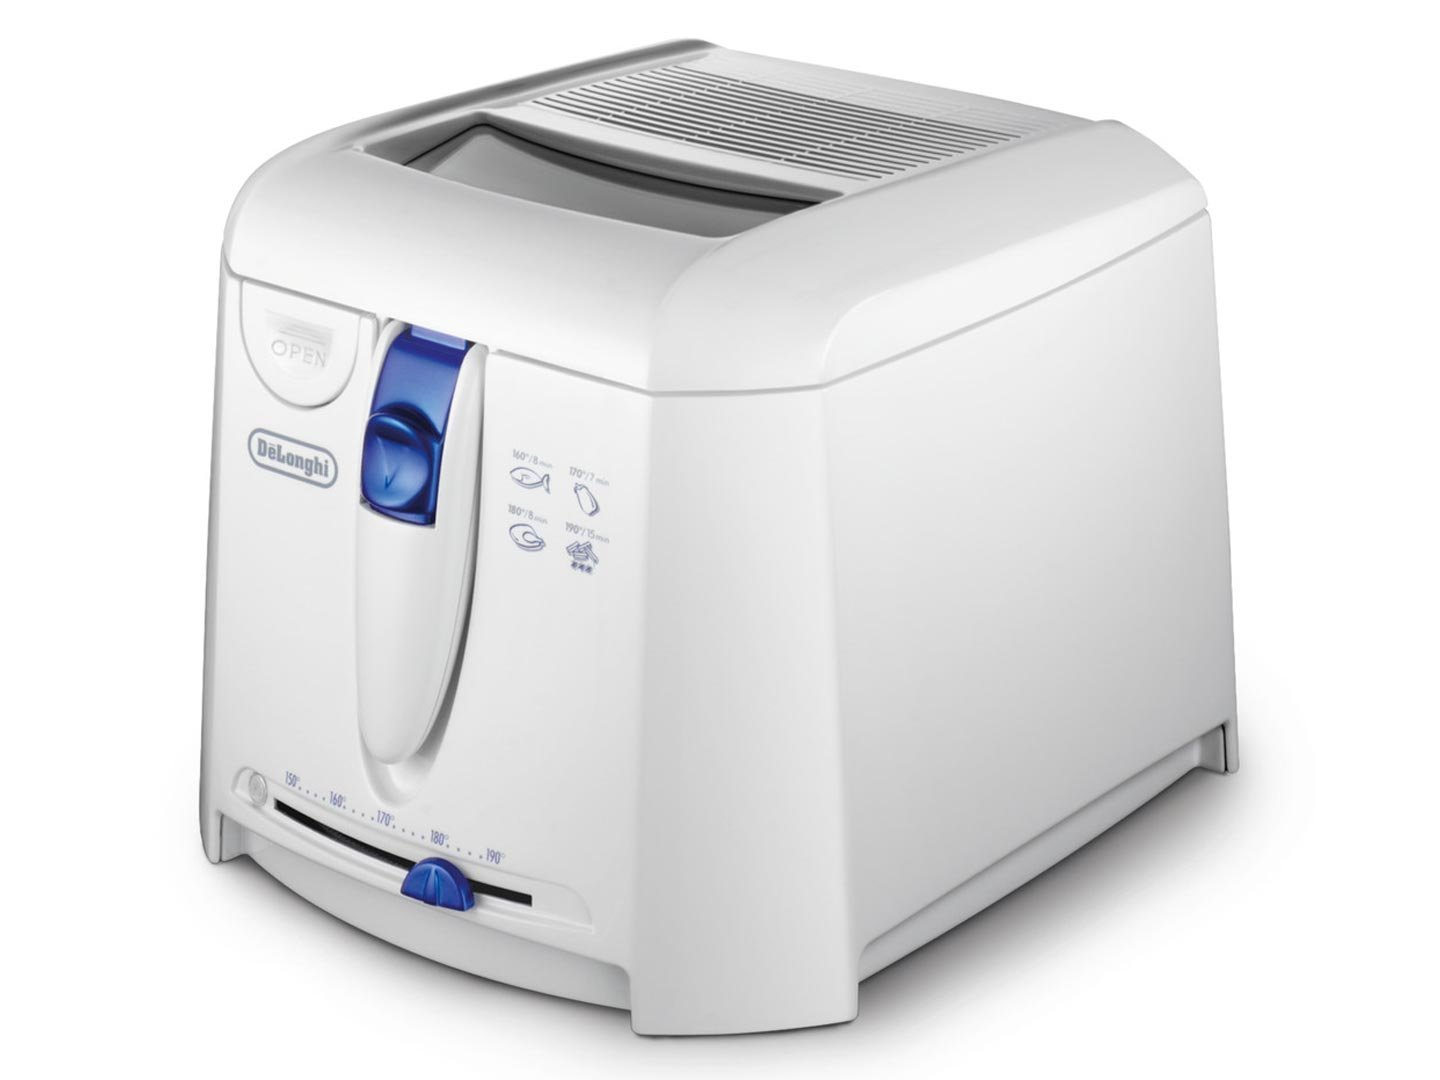 DeLonghi F 27201, Blanco, 265 x 325 x 225 mm, 2500 g, 220/230 V, 50/60 Hz - Freidora: Amazon.es: Hogar